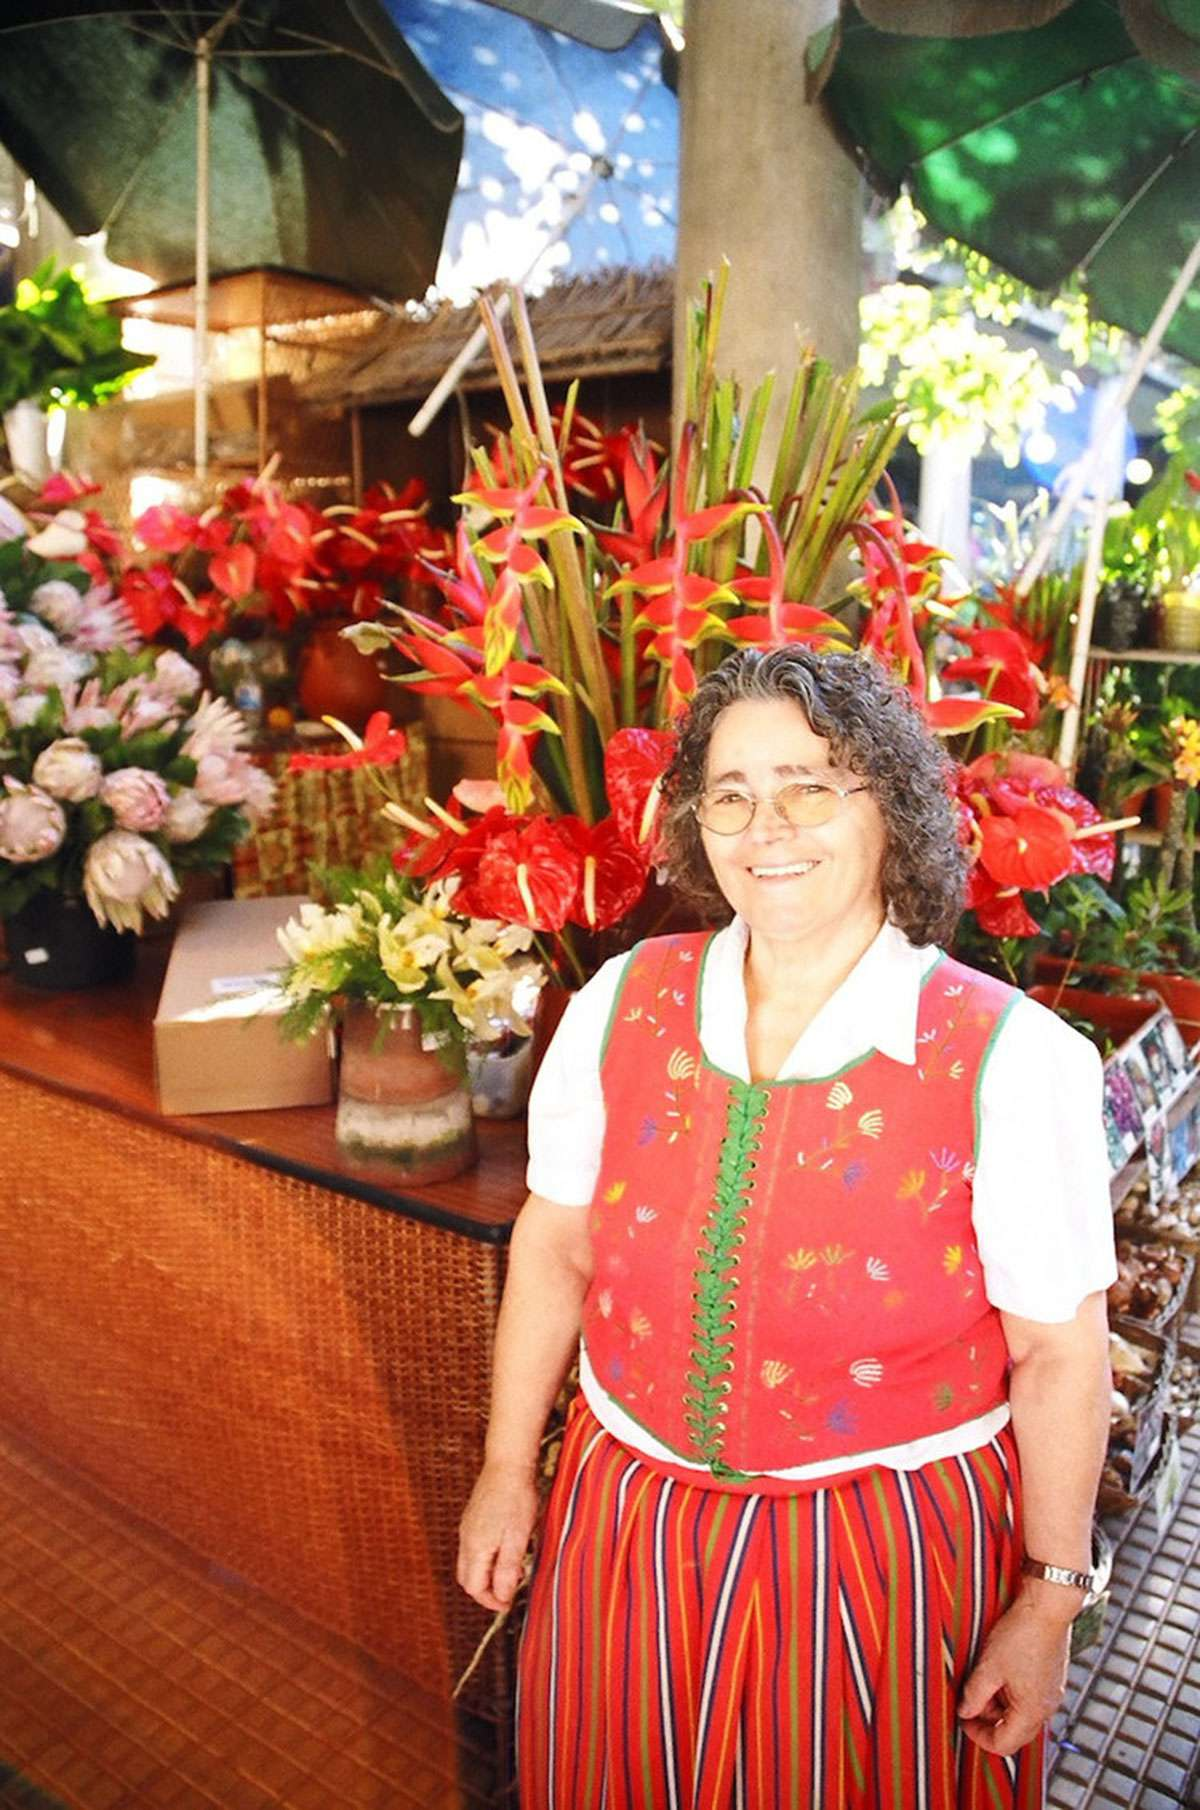 Isabel Pereira sells the flowers she grows at Mercado dos Lavradores in Funchal